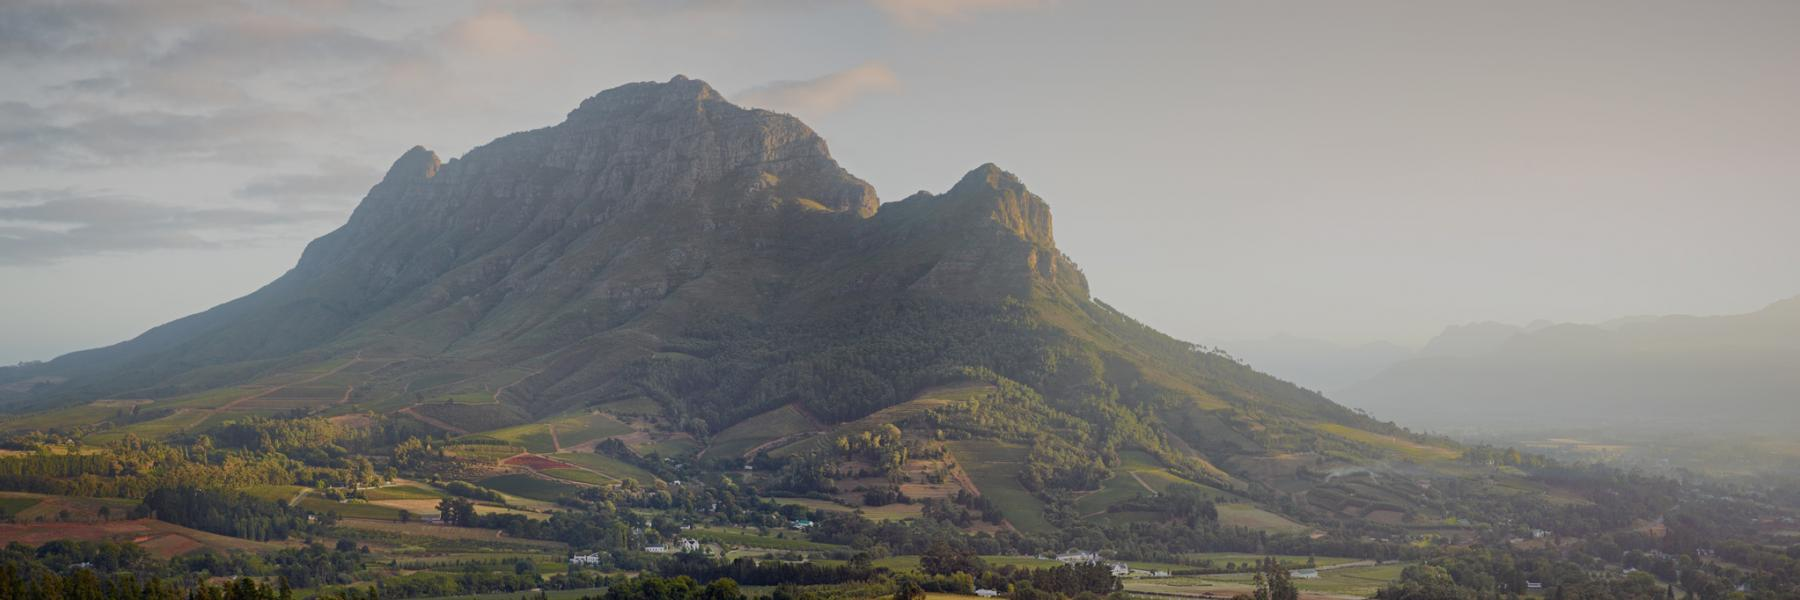 Simonsberg Mountain from Capensis' Fijnbosch vineyards